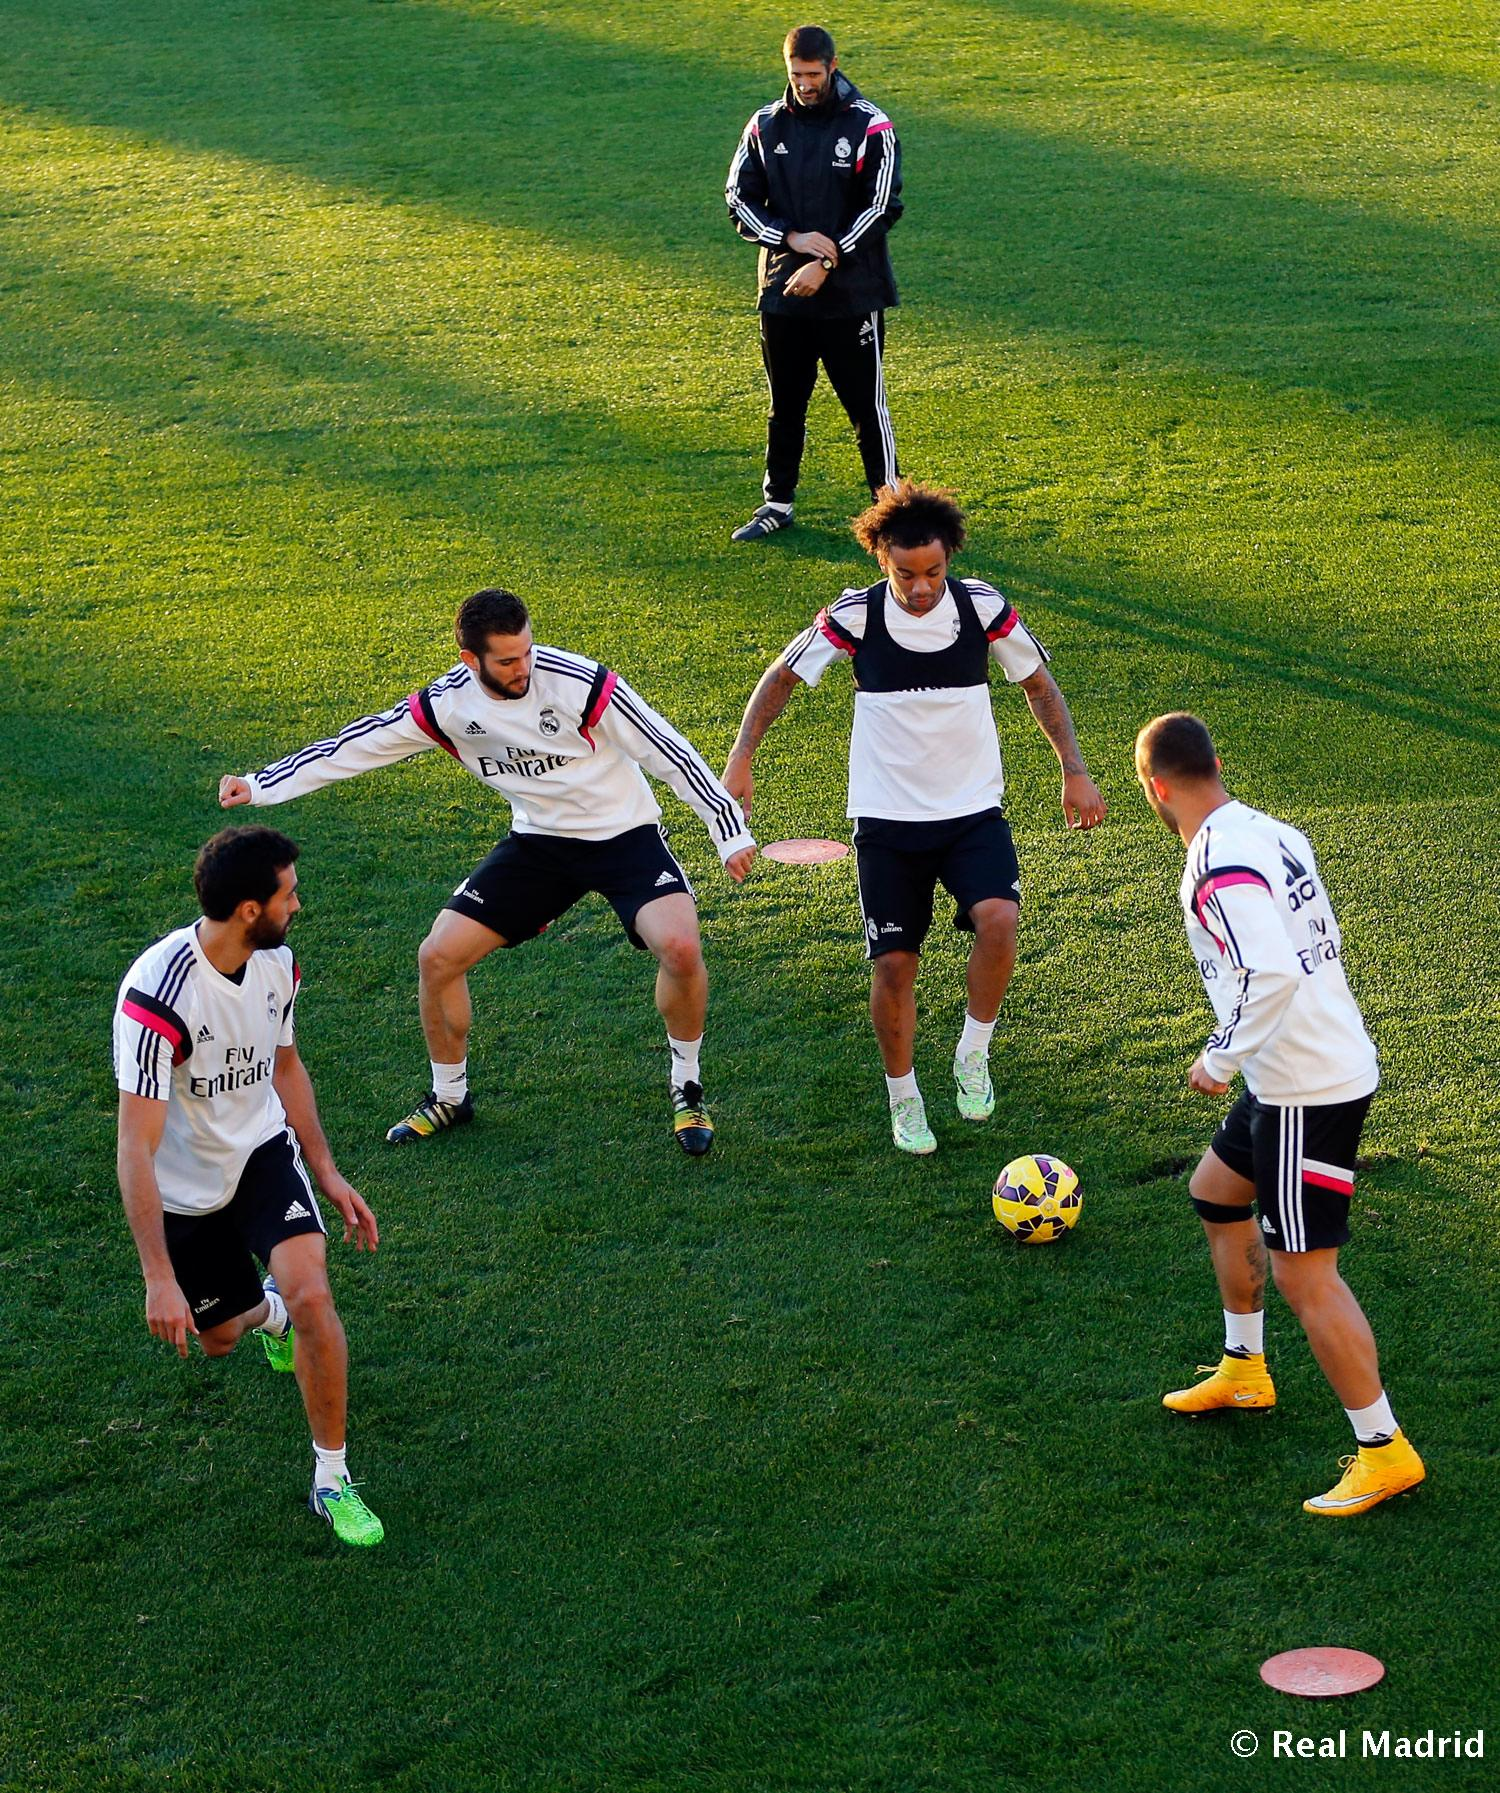 Real Madrid - Entrenamiento del Real Madrid - 11-11-2014